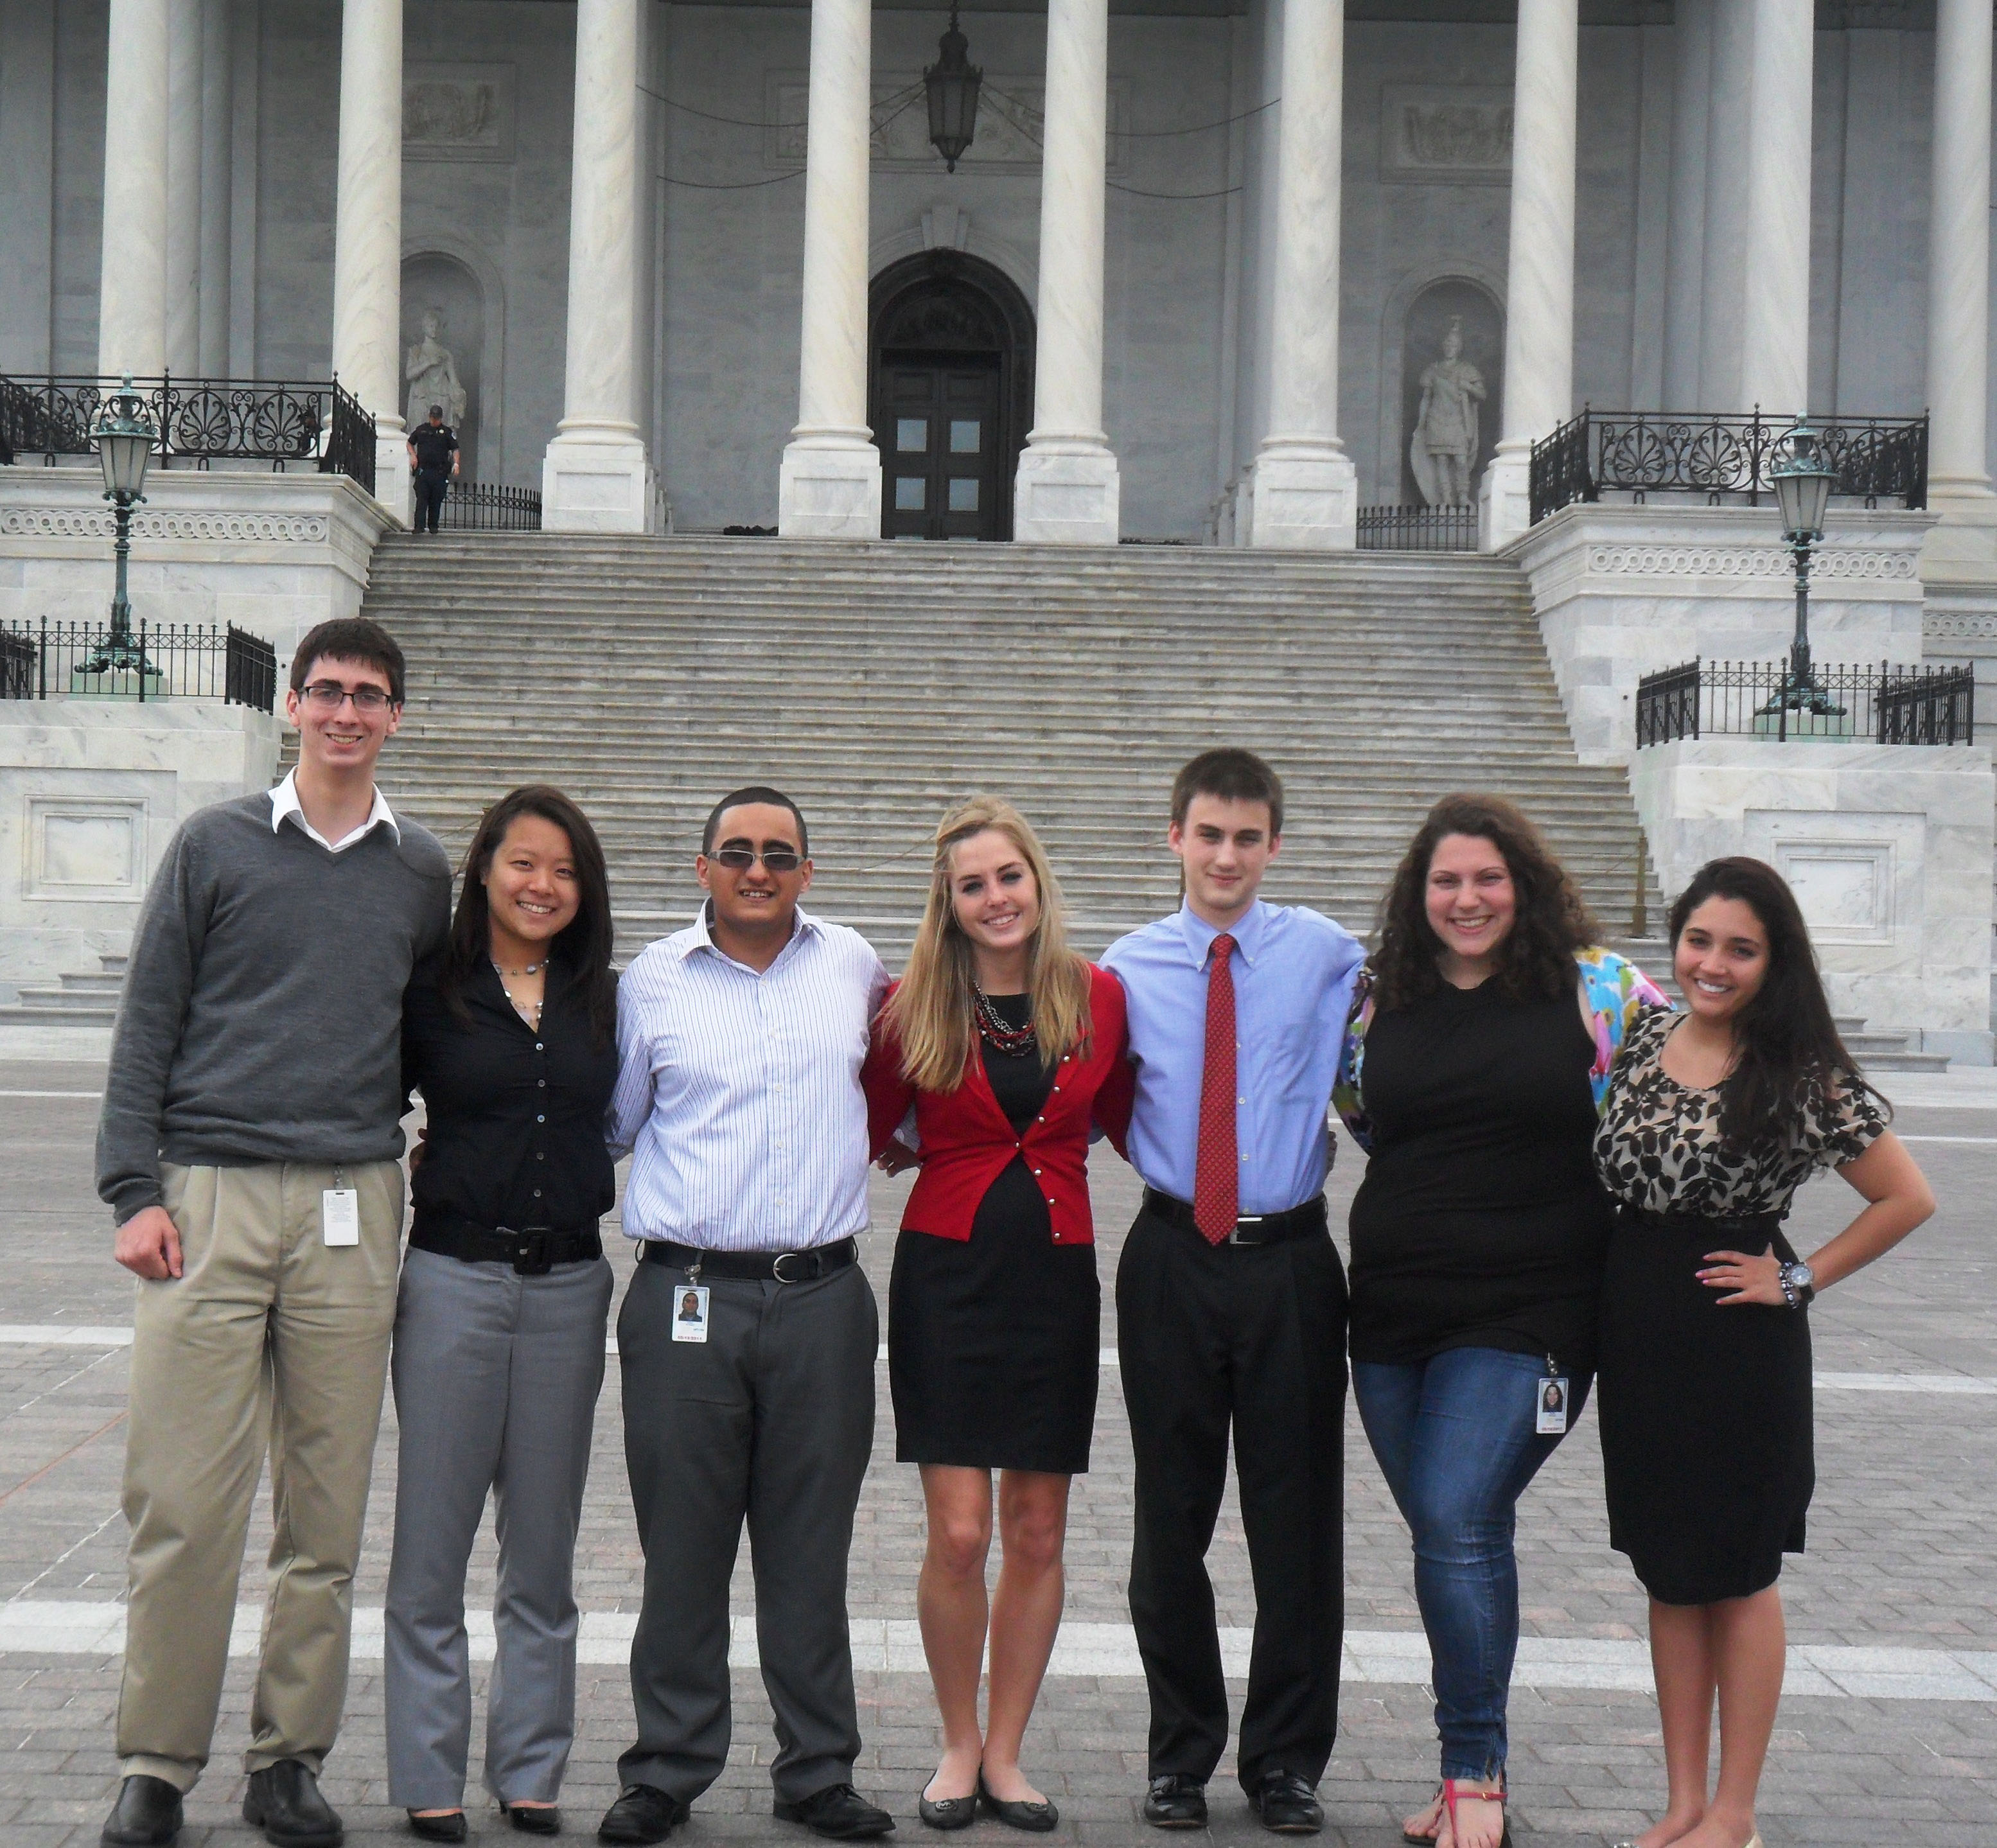 Seven Hokies on the Hill interns in front of Capitol in Washington, D.C.